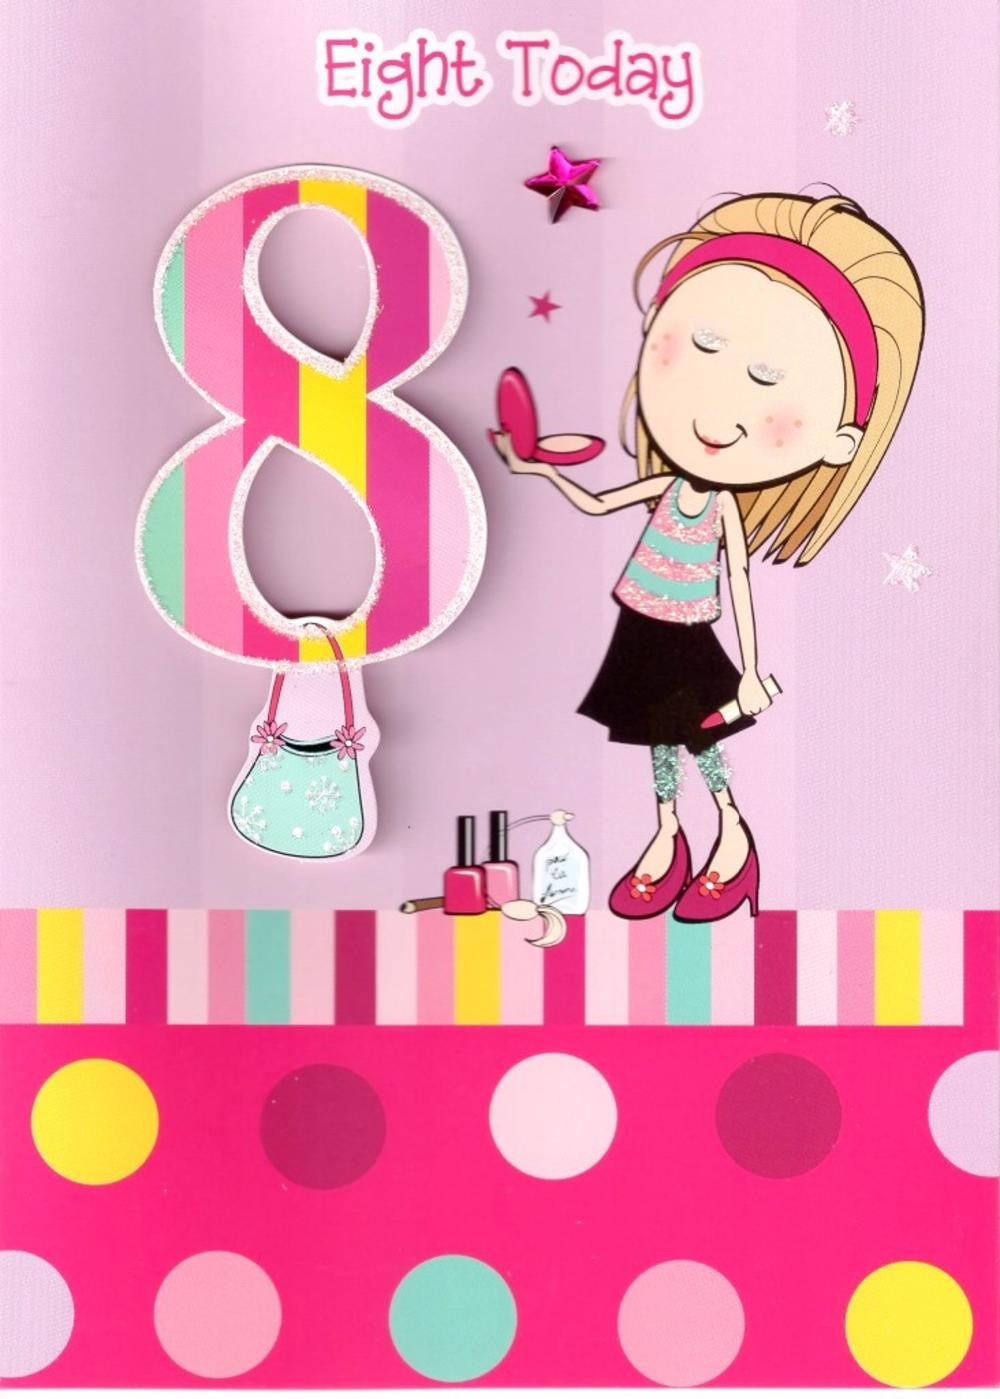 Girls 8th Birthday 8 Eight Today Card | Cards | Love Kates